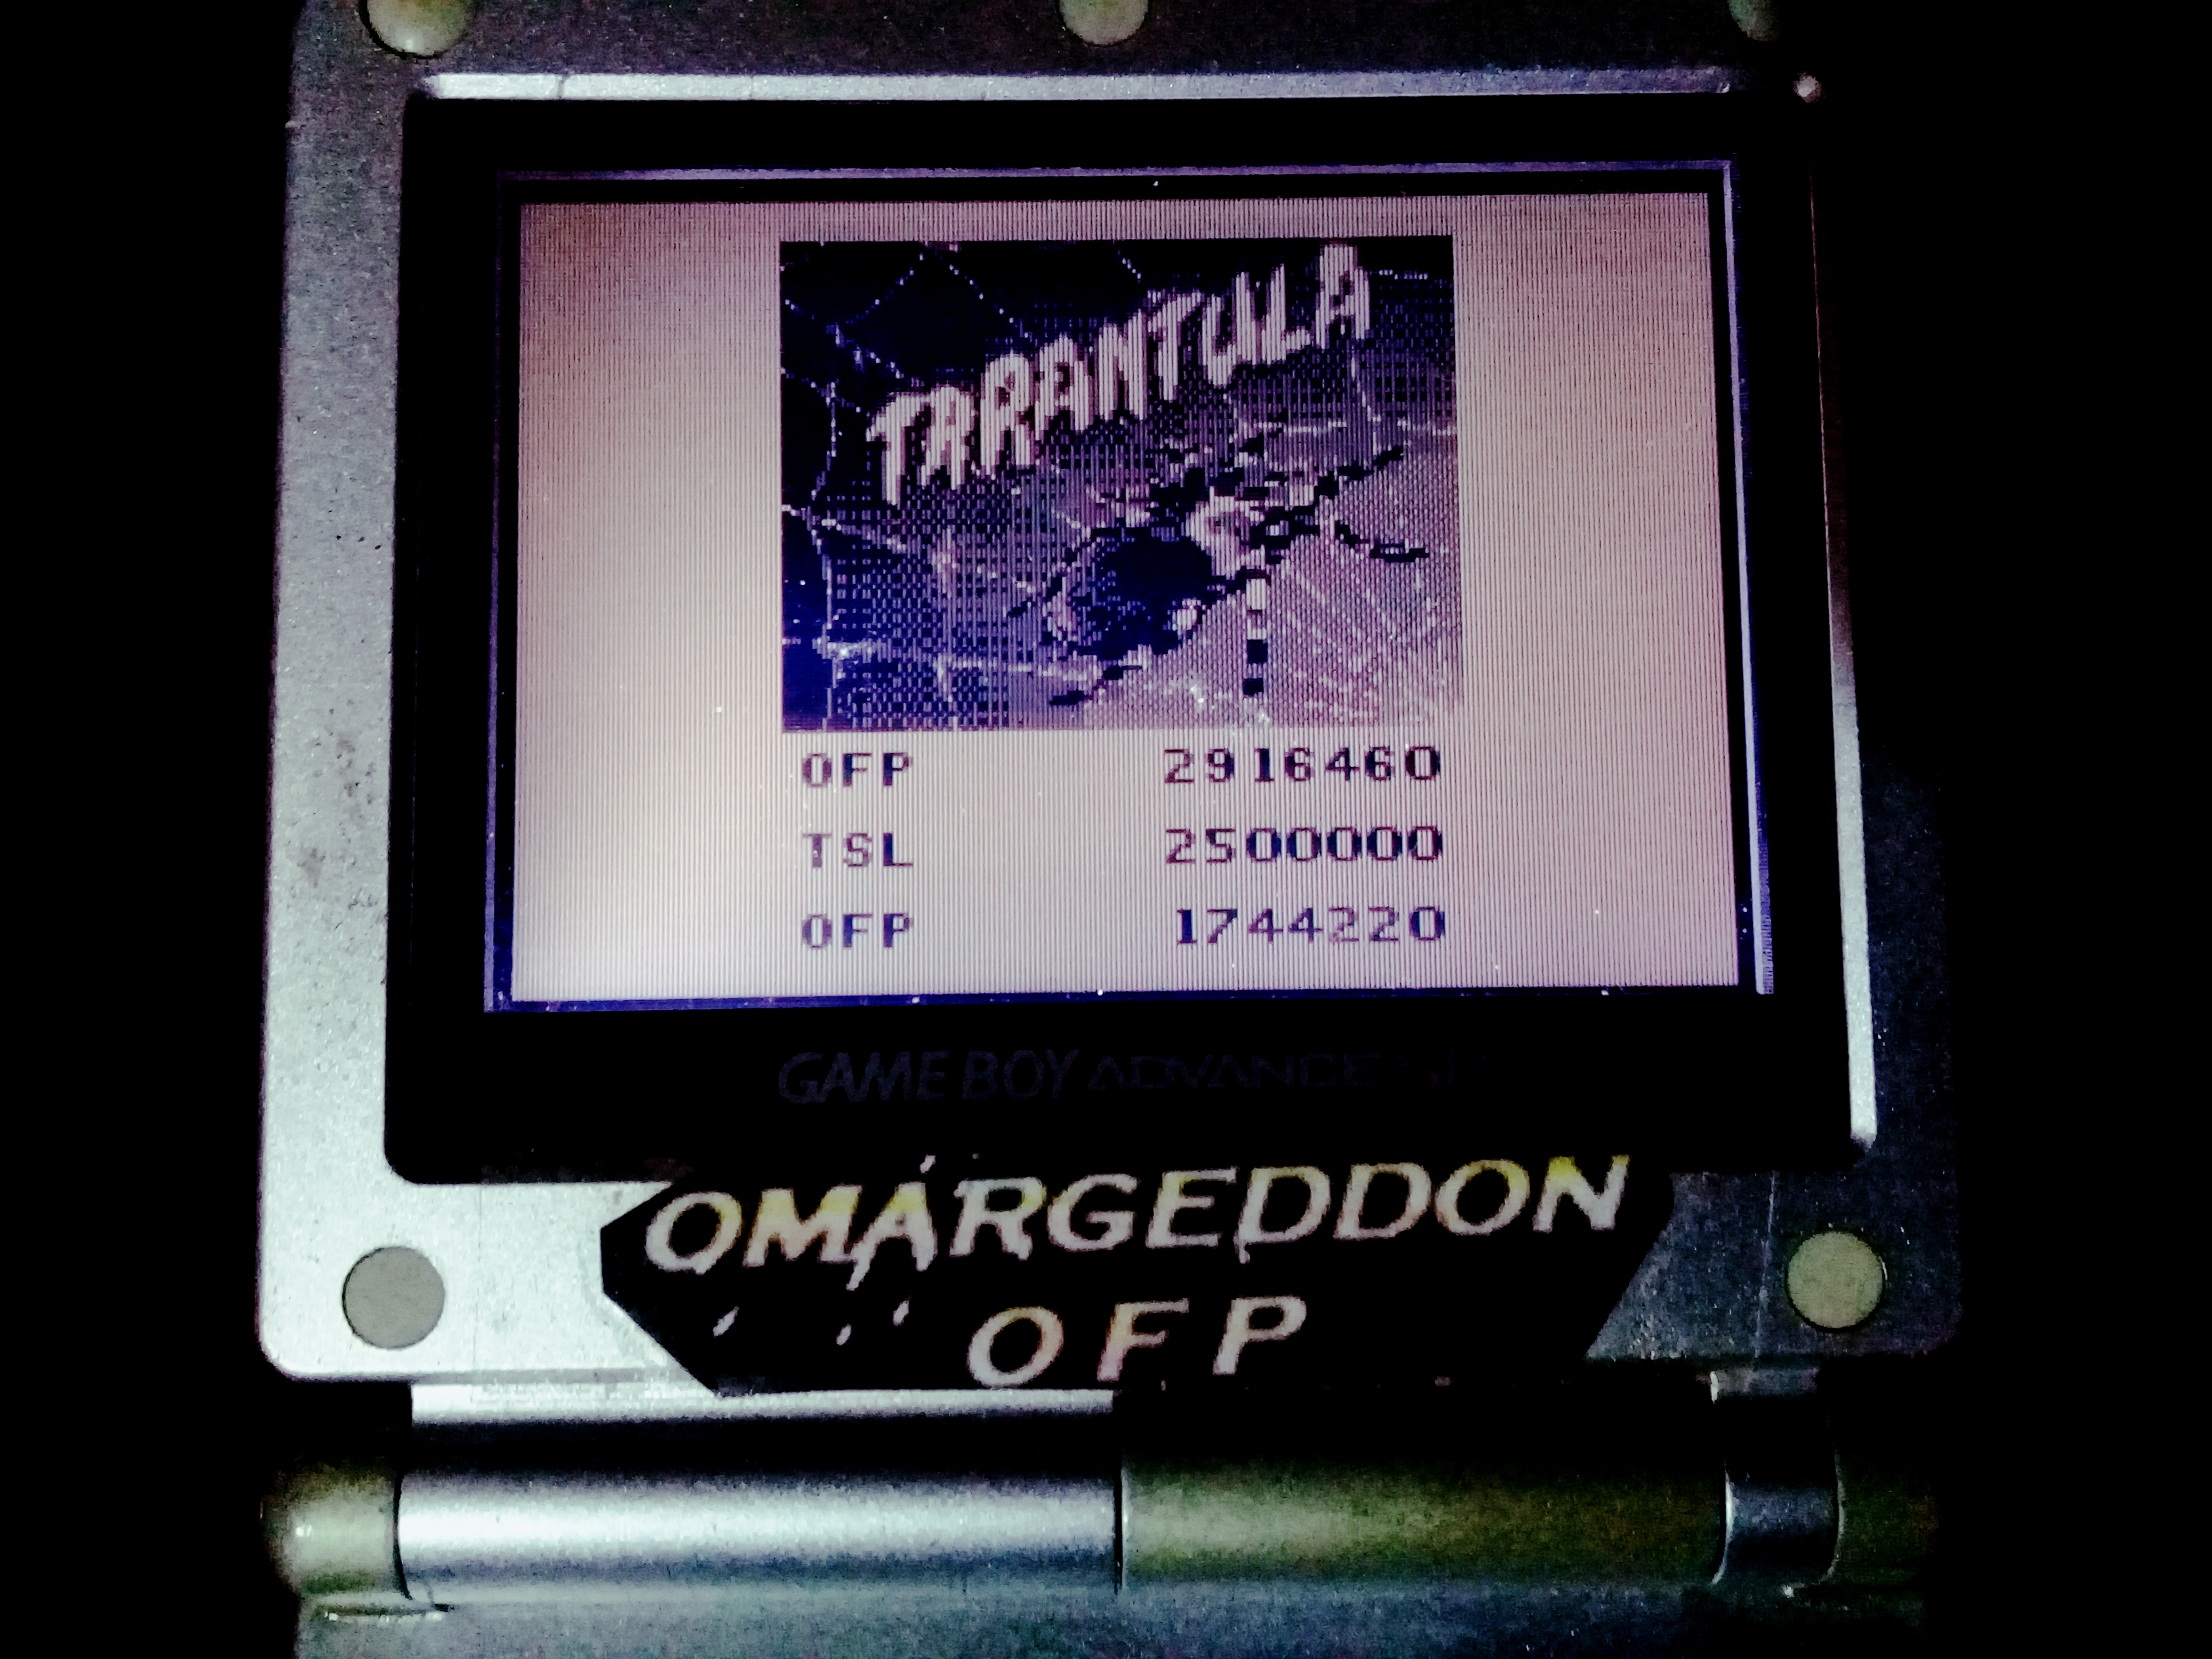 omargeddon: Pinball Mania: Tarantula (Game Boy) 2,916,460 points on 2020-07-25 01:45:02